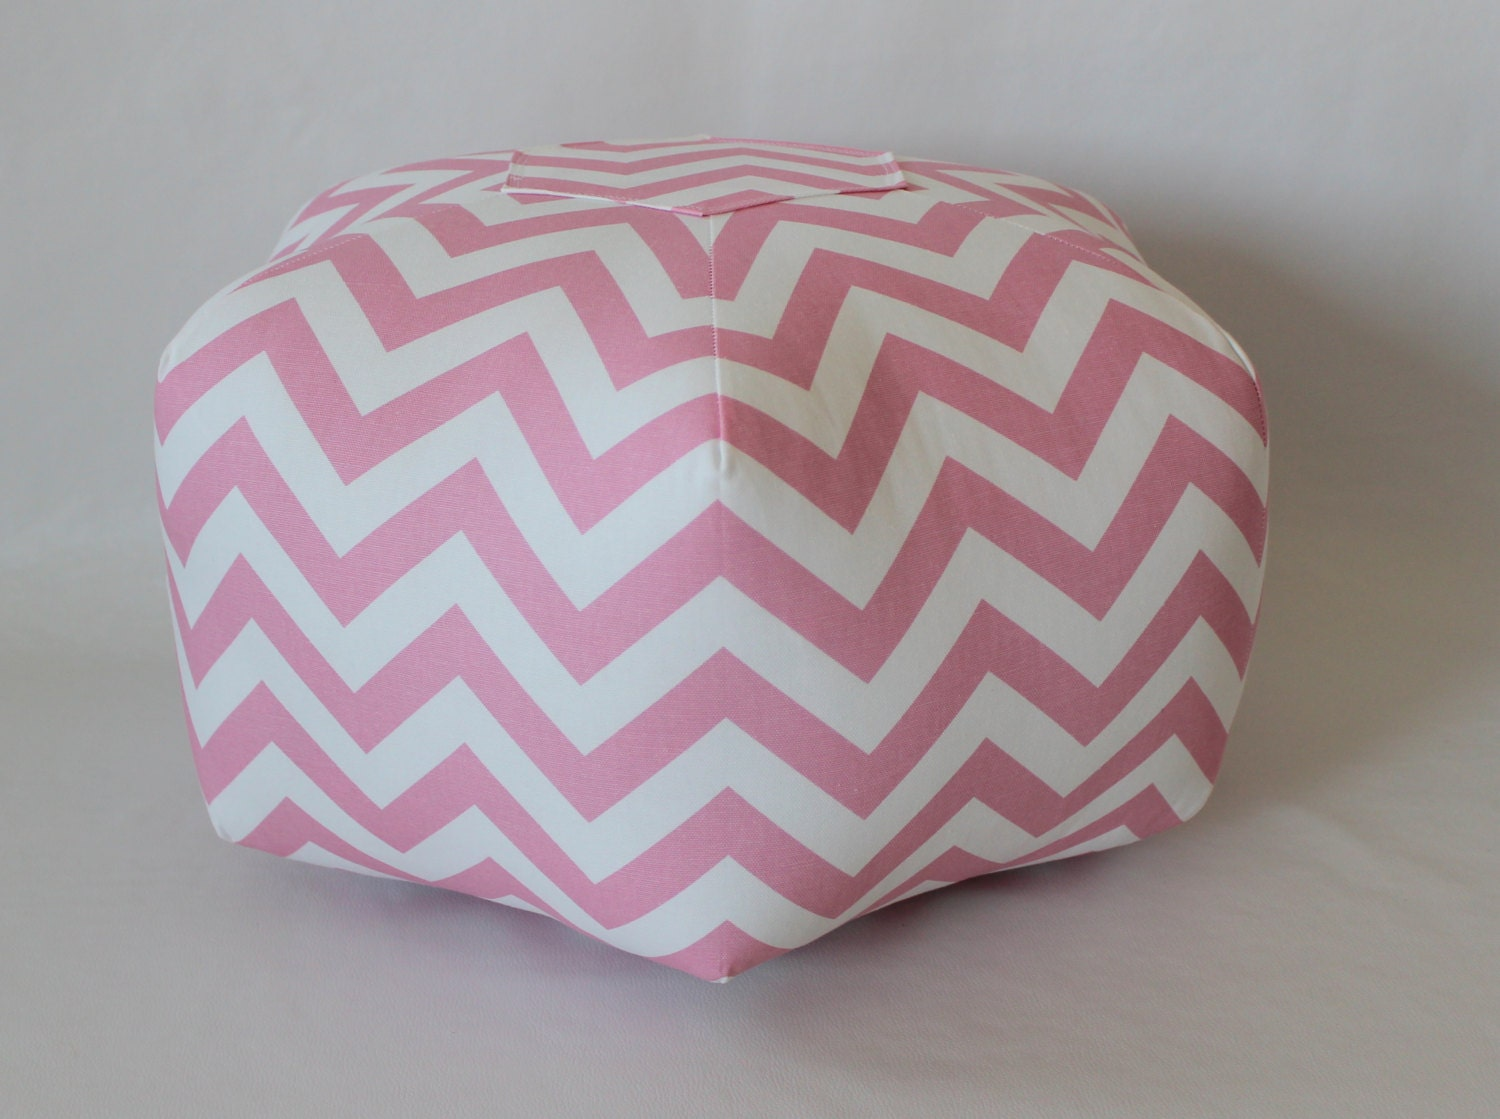 Floor Pillows For Infants : 18 Pouf Ottoman Floor Pillow Baby Pink Zig Zag Chevron by aletafae